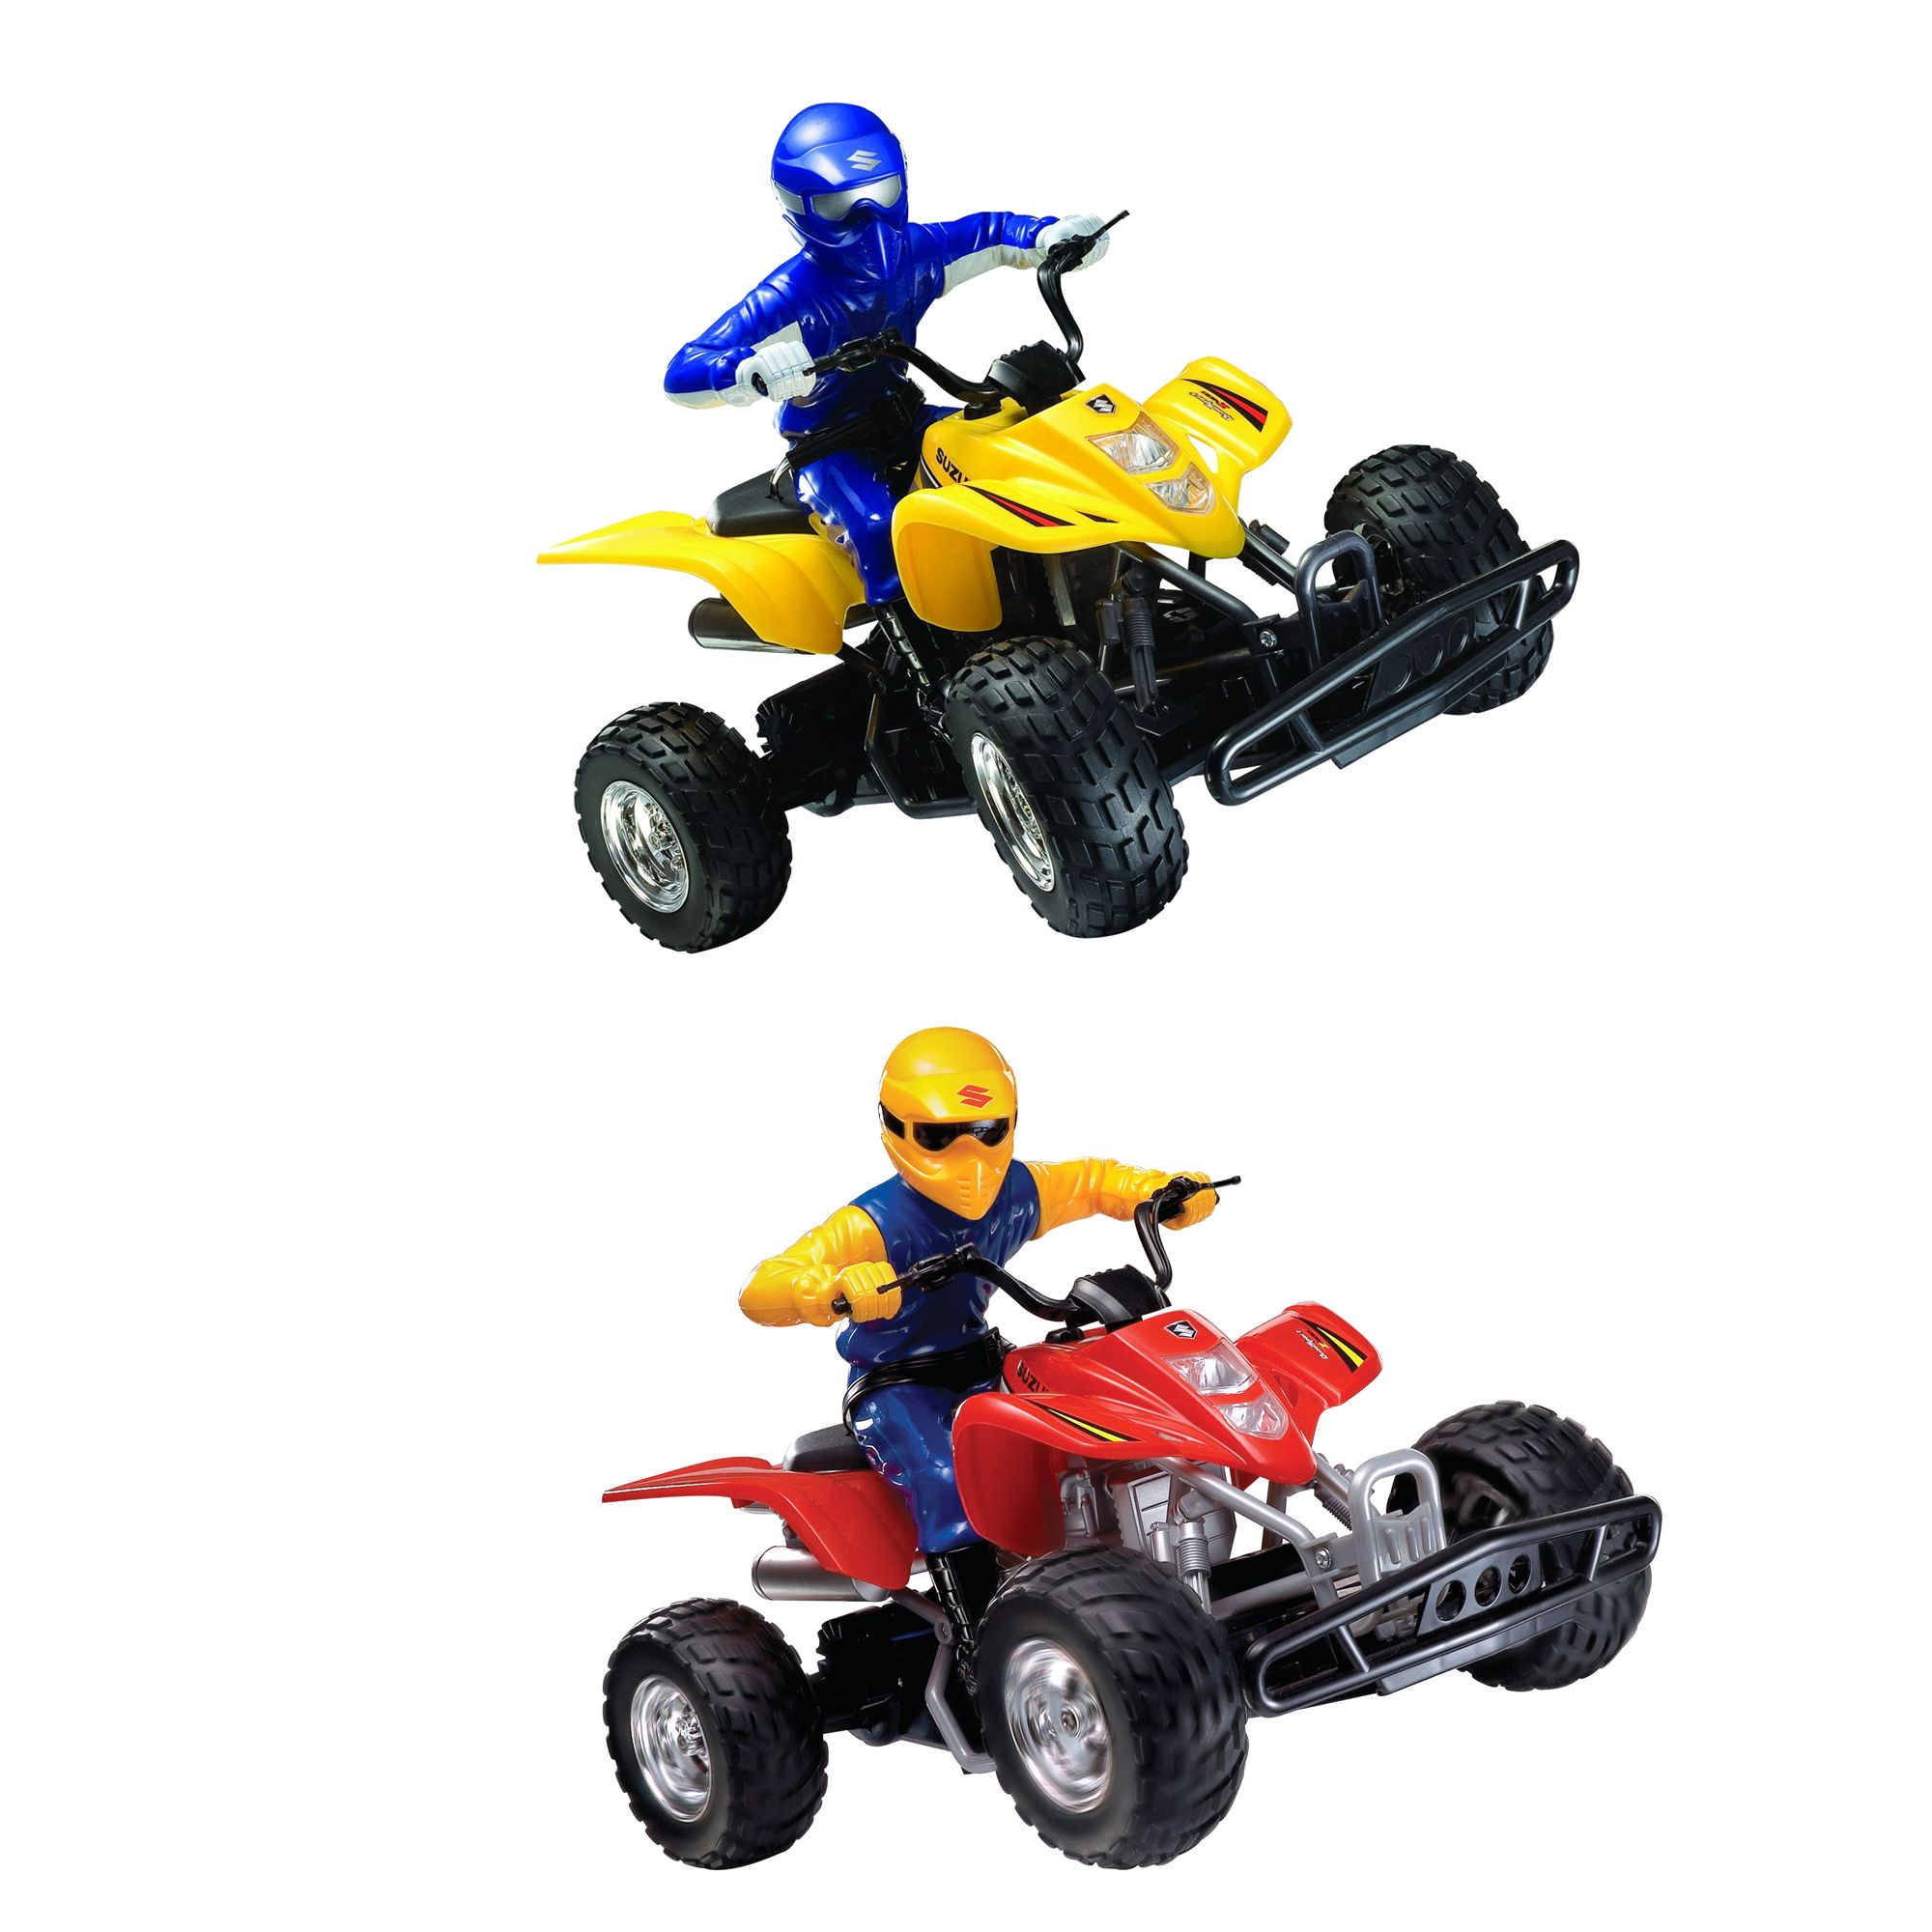 Radio Control Full Function 1:7 Suzuki ATV